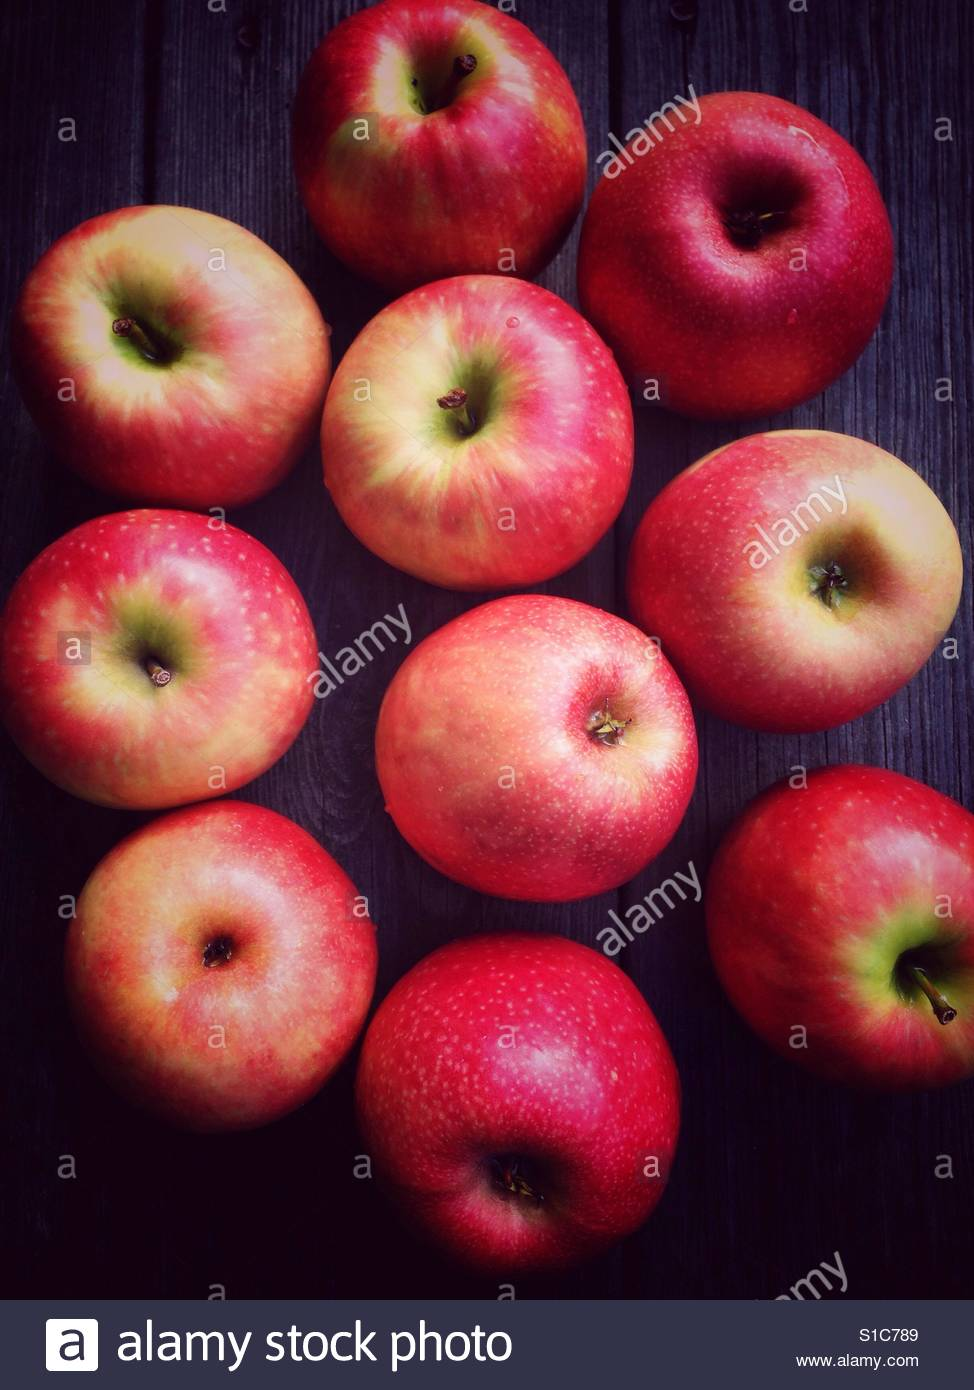 Pink Lady apples on a wooden surface - Stock Image